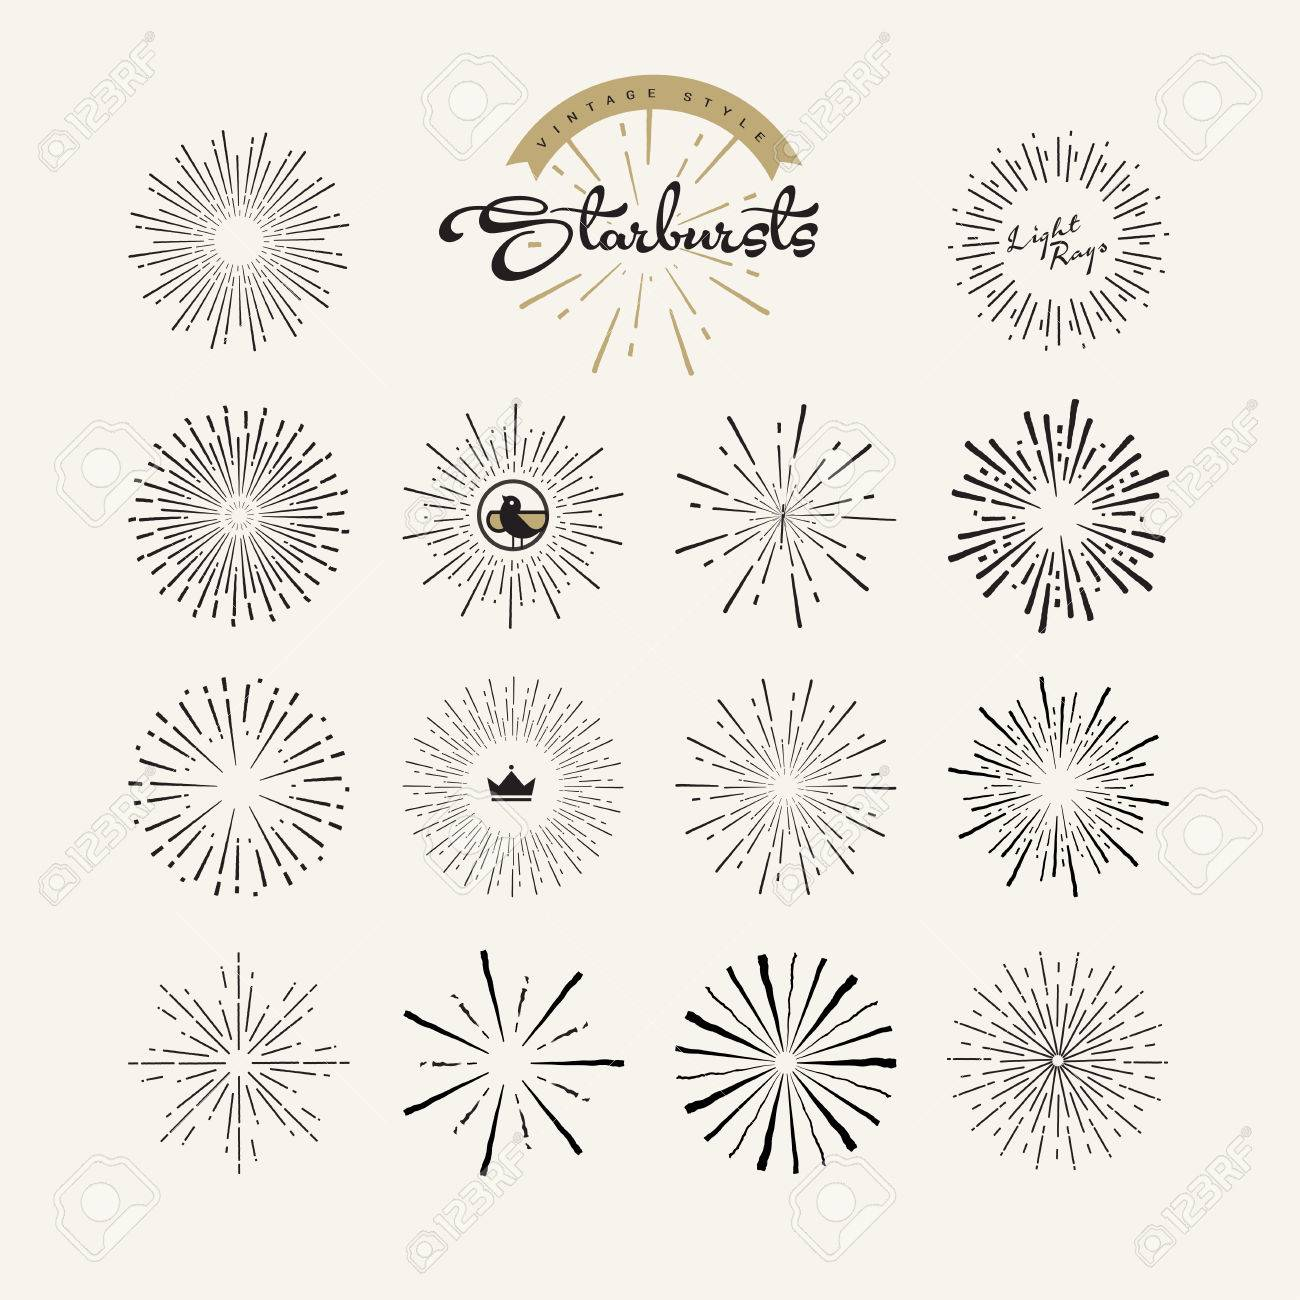 Starbursts Vintage Style Design Elements For Graphic And Web ... for Vector Light Rays Vintage  539wja